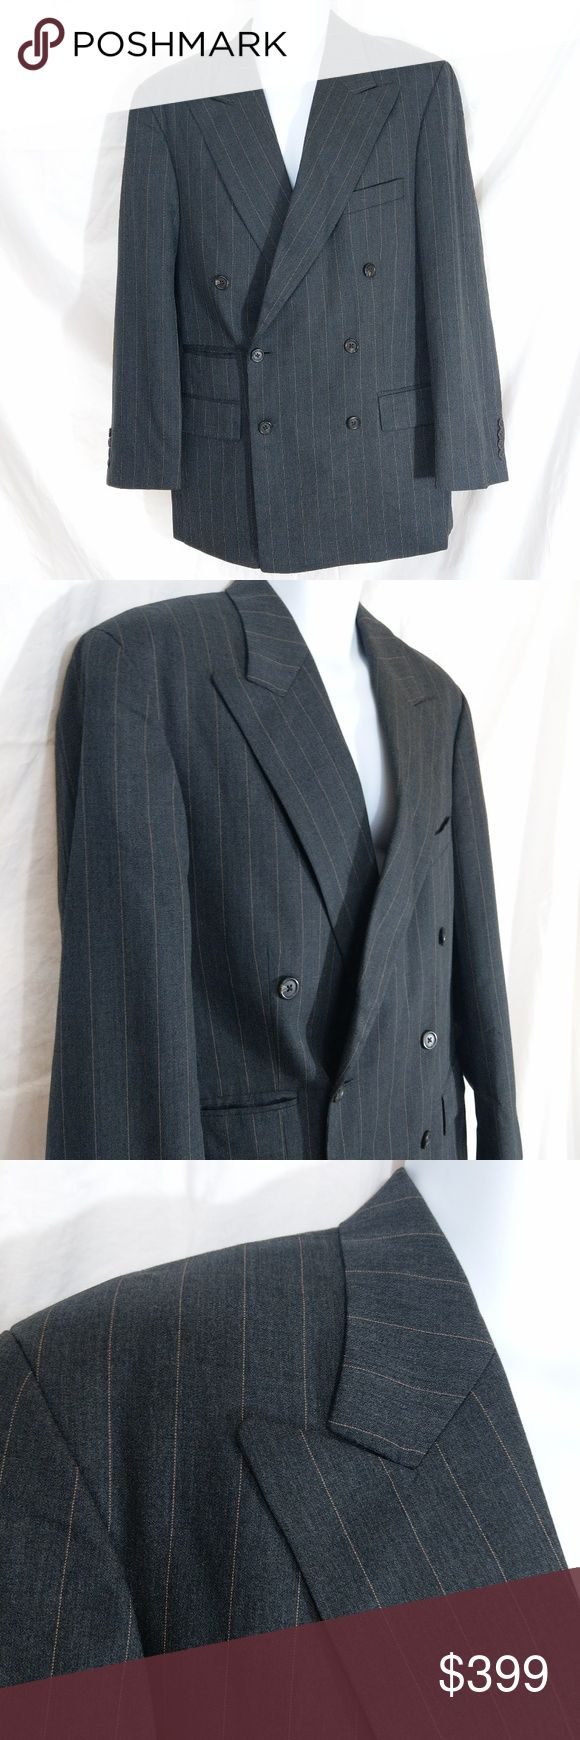 Ralph Ralph Lauren Chalk Stripe Wool Suit Jacket Grey Ralph Ralph Lauren double-breasted chalk stripe wool suit jacket is NWOT and features peak lapels, buttonhole at left lapel, contrasting undercollar, cuffs with 4 decorative buttons, 2 front waist flapped pockets, right hip ticket pocket, left chest welt pocket, and 2 interior chest pockets. Double vent, fully lined. 100% pure new wool. Tag says 39R. Please consult pictures for more/better description. Measurements upon request. Made in…